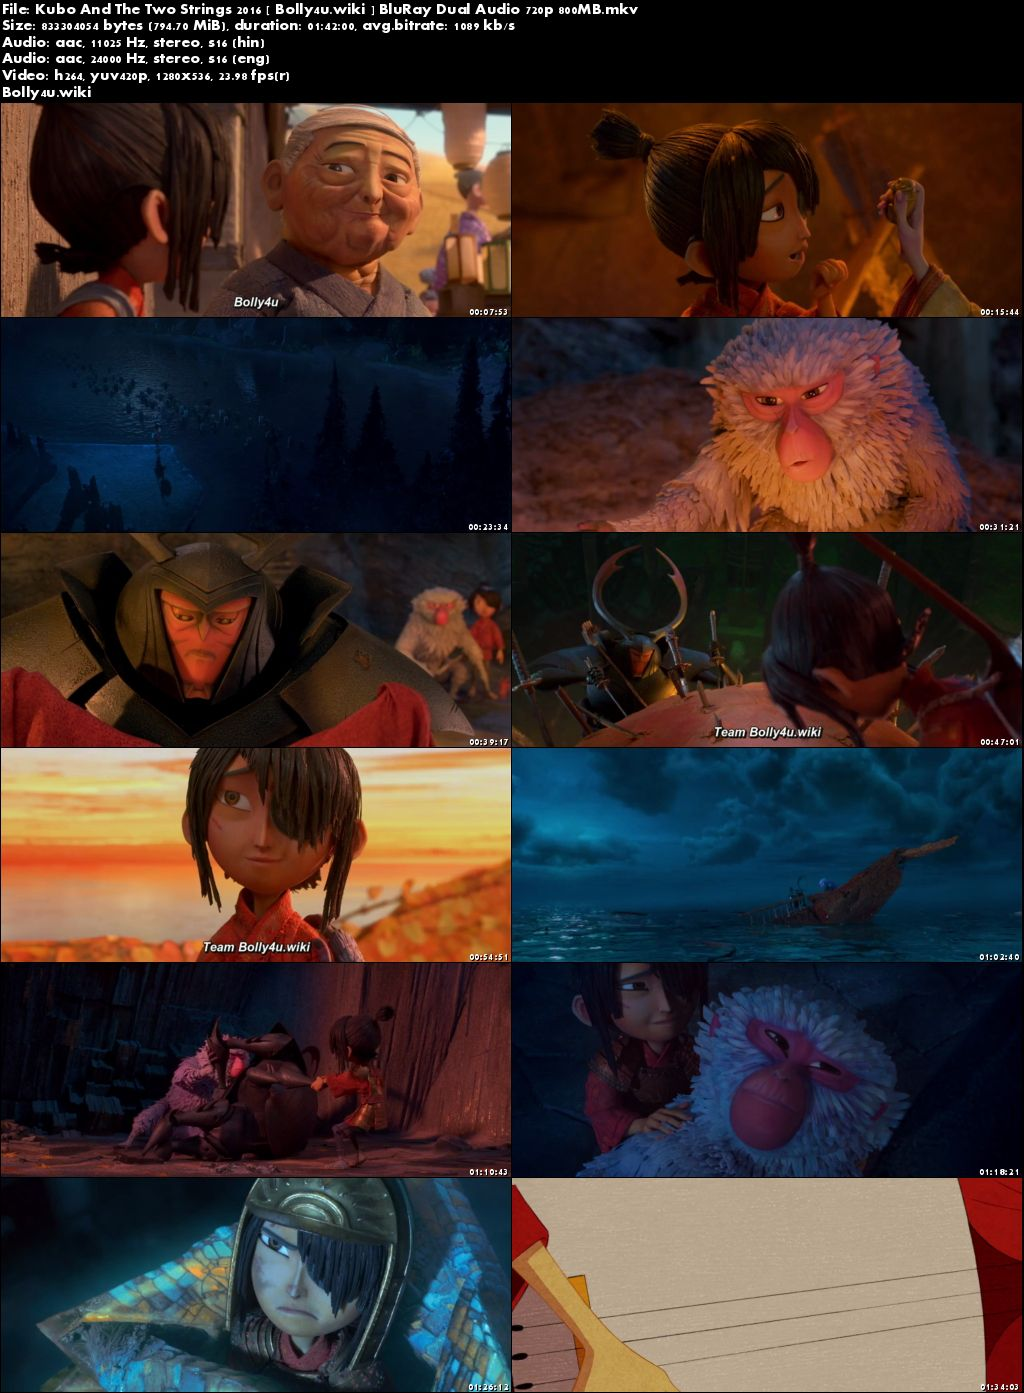 Kubo And The Two Strings 2016 BluRay 300MB Dual Audio ORG 480p Download